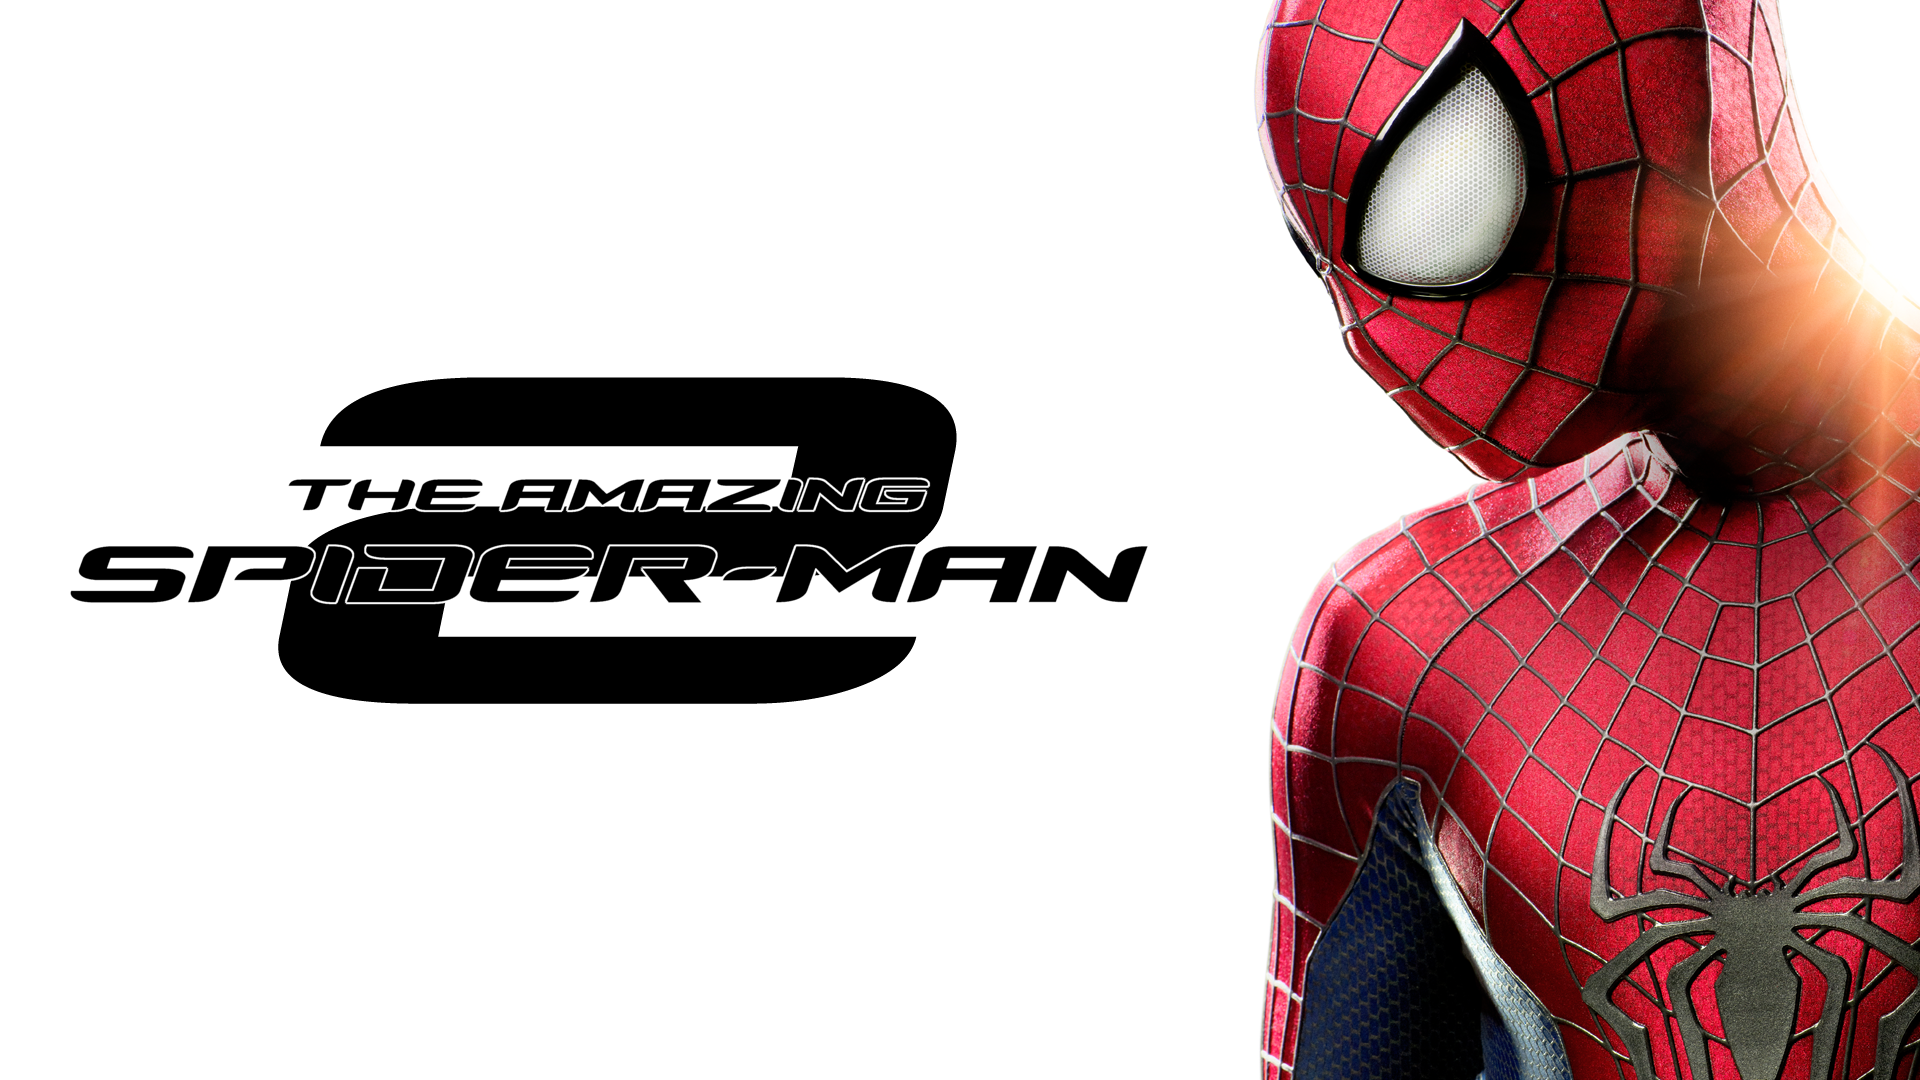 The Amazing Spider Man 2 2014 Film Wallpaper High Definition High Quality Widescreen